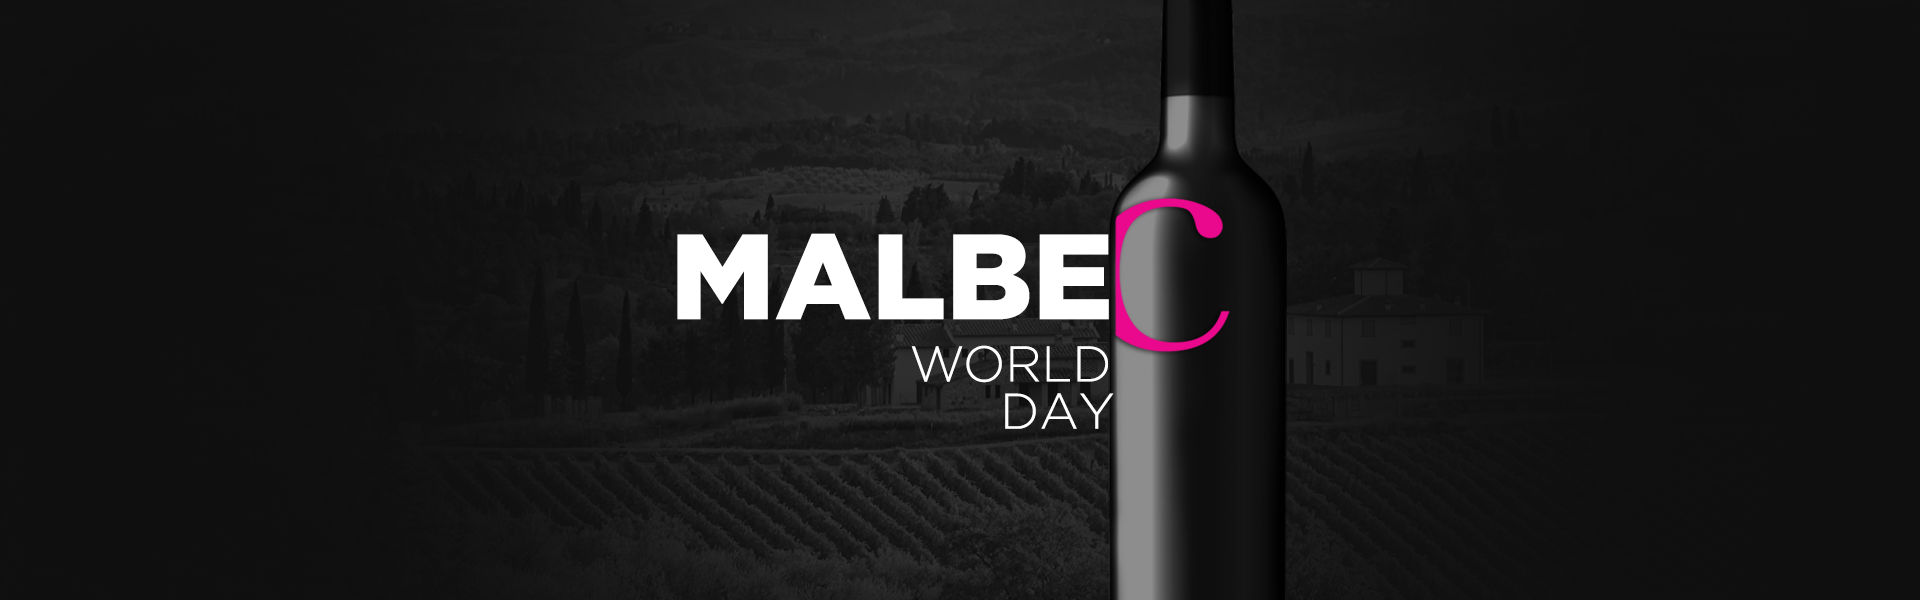 Tim-tim Comemore o Malbec World Day